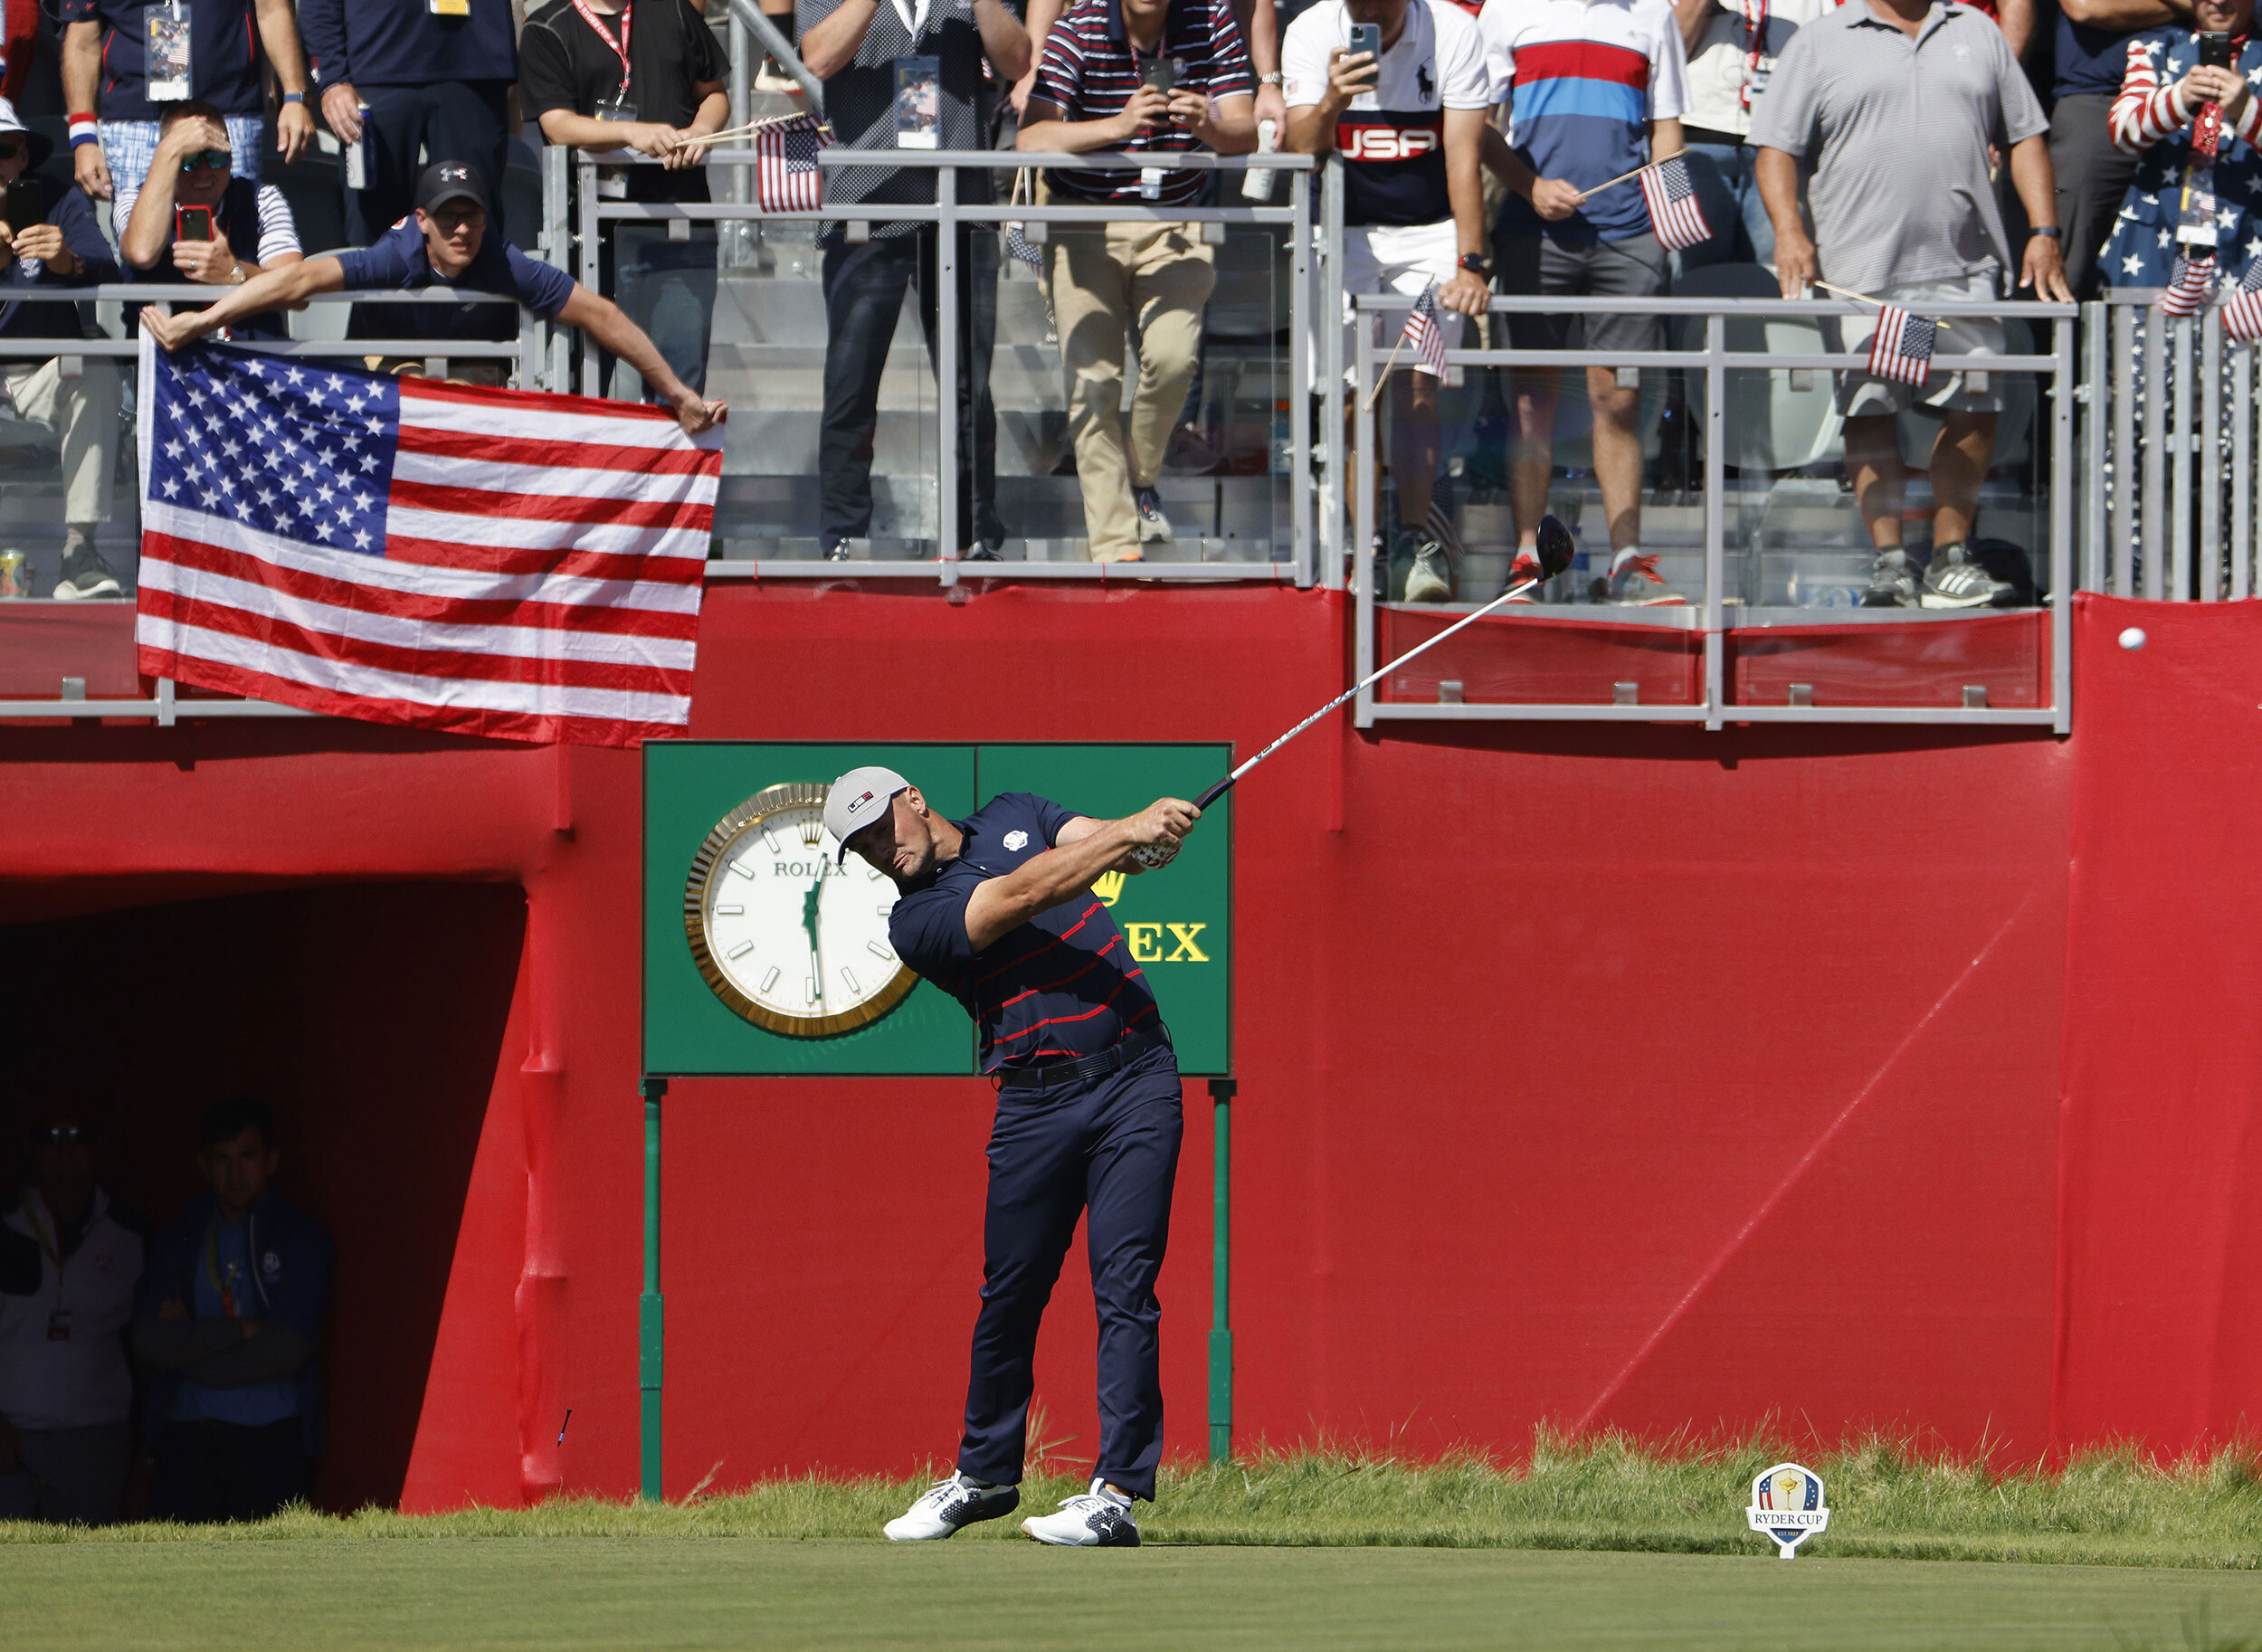 <i>Erik S Lesser/EPA-EFE/Shutterstock</i><br/>Bryson Dechambeau hits his tee shot on the first hole during the Fourball matches.